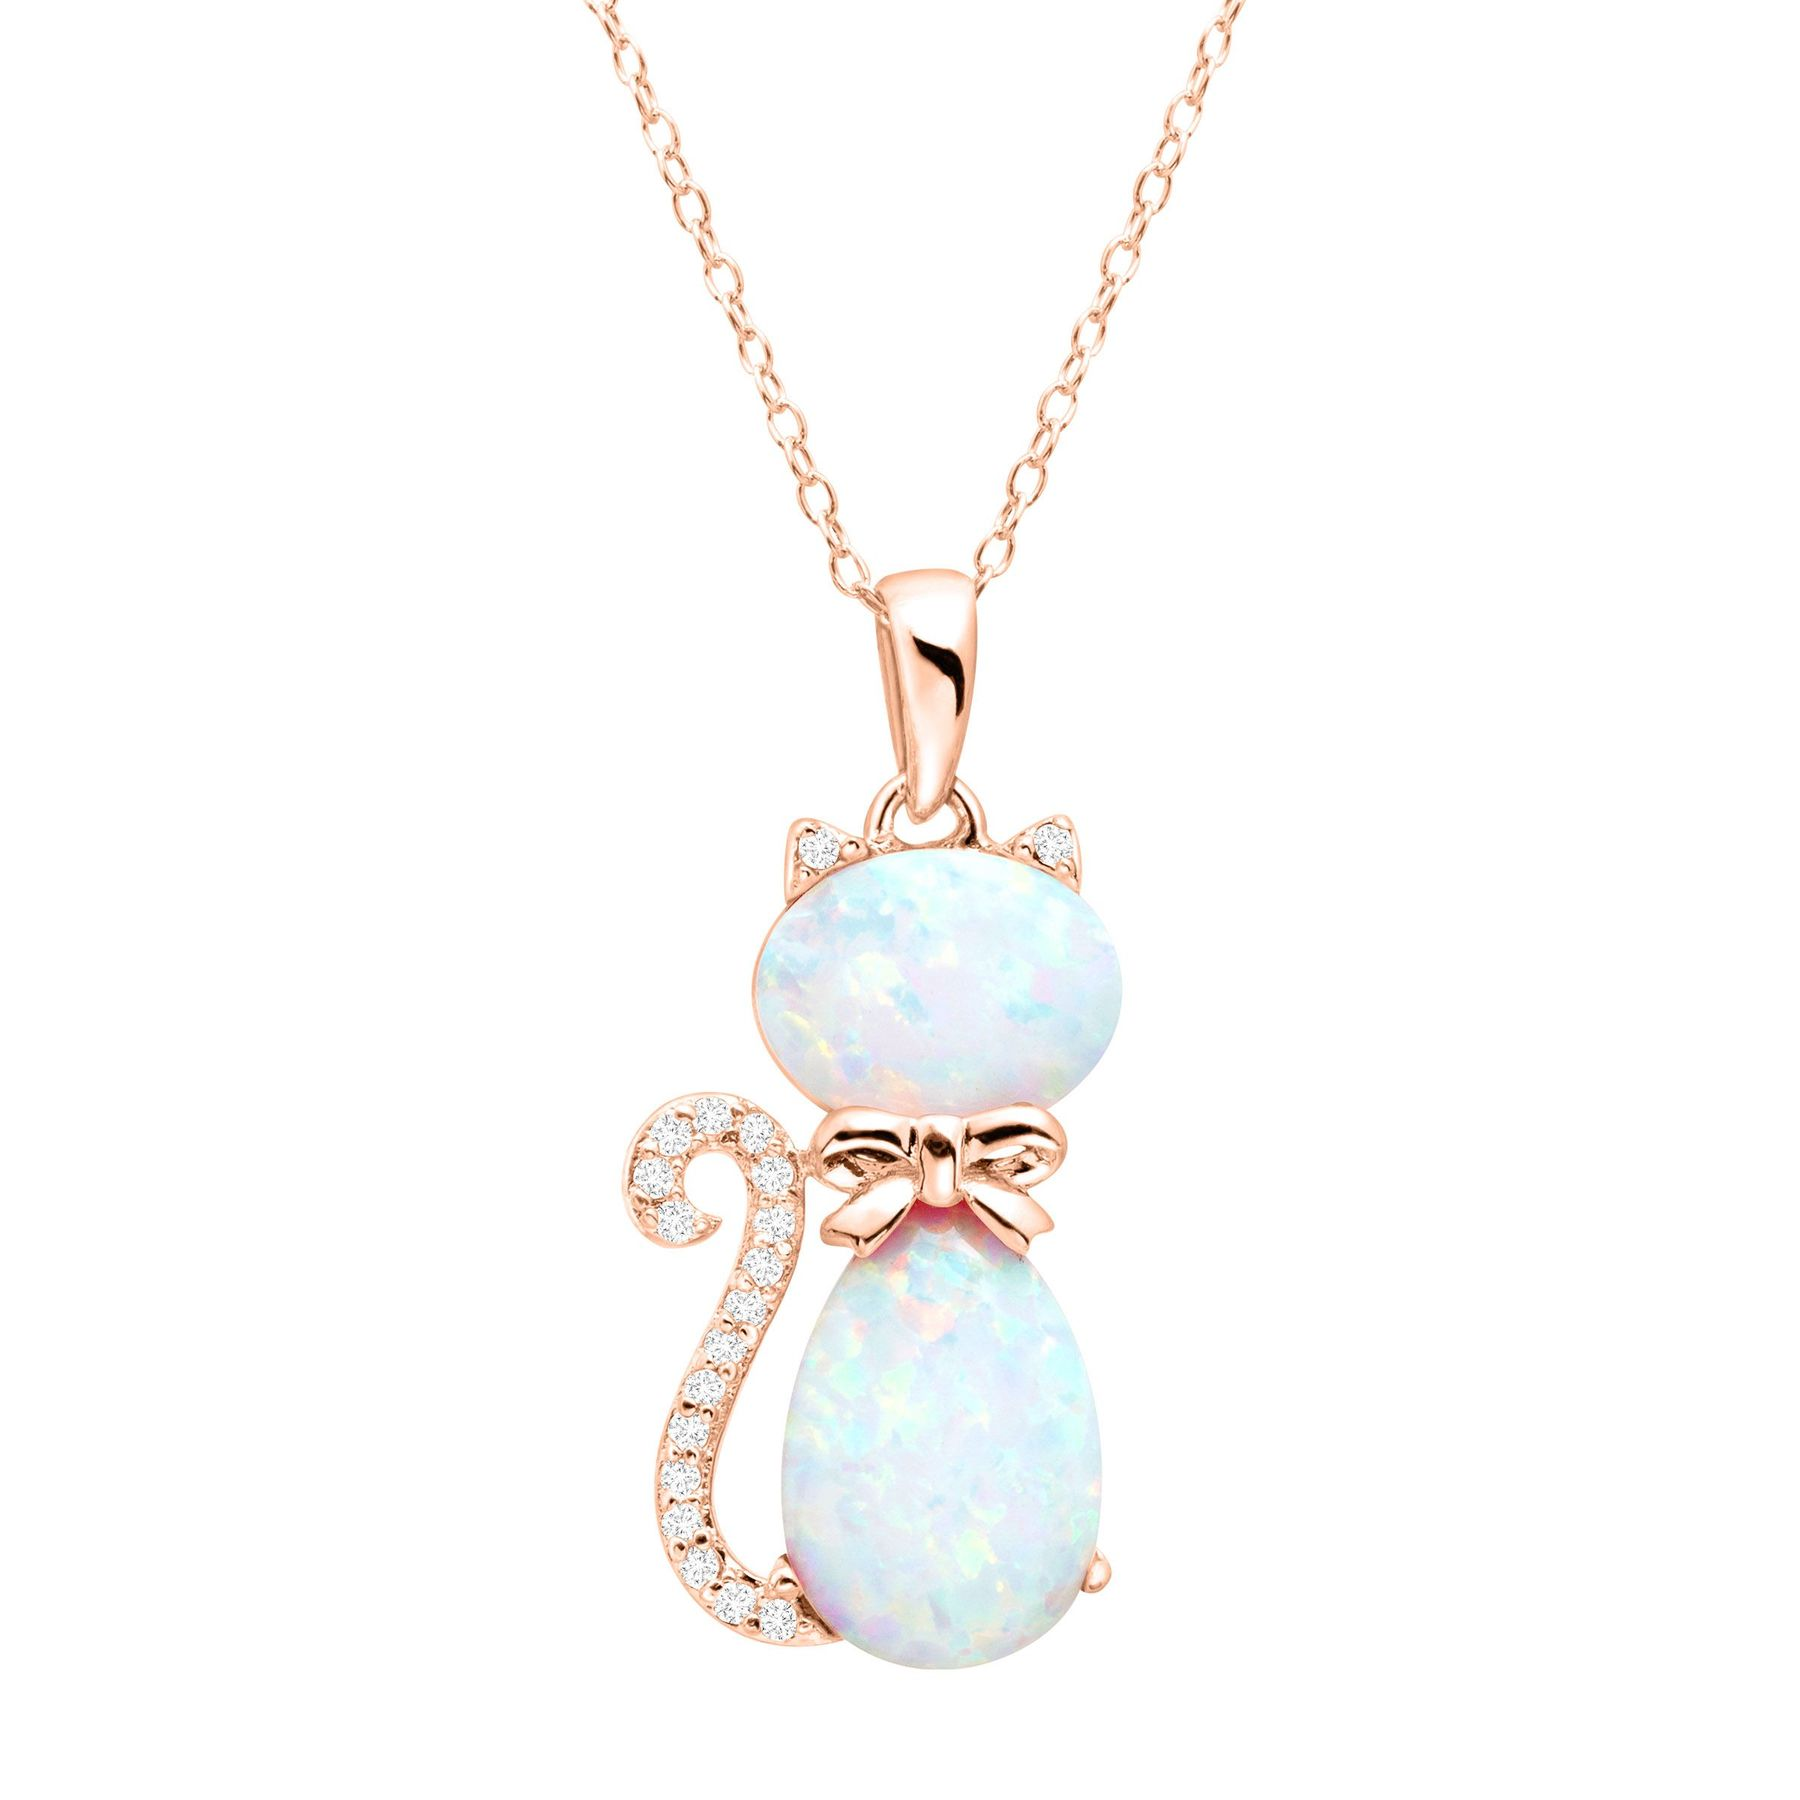 white product overstock watches preciosa gold necklace on pendant la life orders over shipping tree jewelry free silver sterling plated opal of